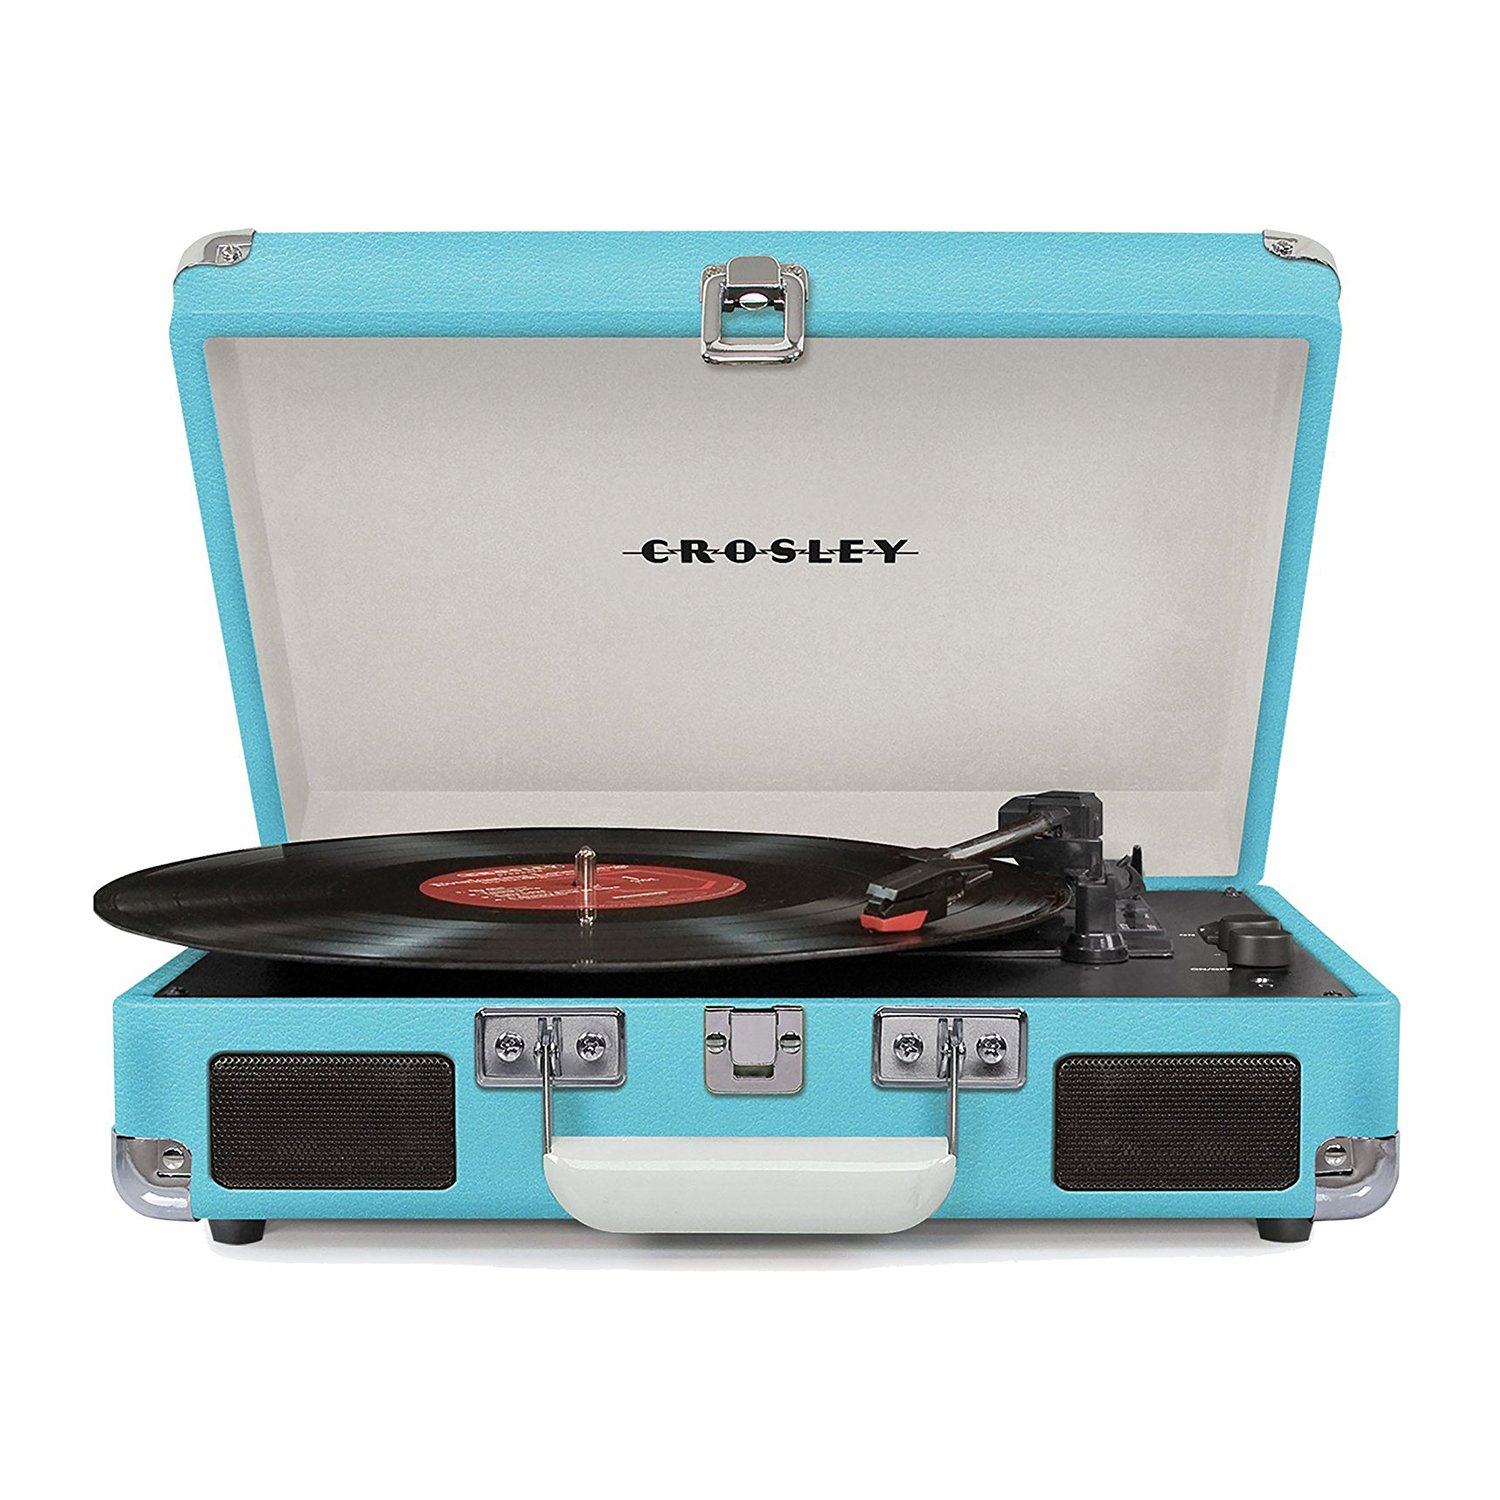 crosley cruiser deluxe portable bluetooth record player turntable turquoise 691161508643 ebay. Black Bedroom Furniture Sets. Home Design Ideas